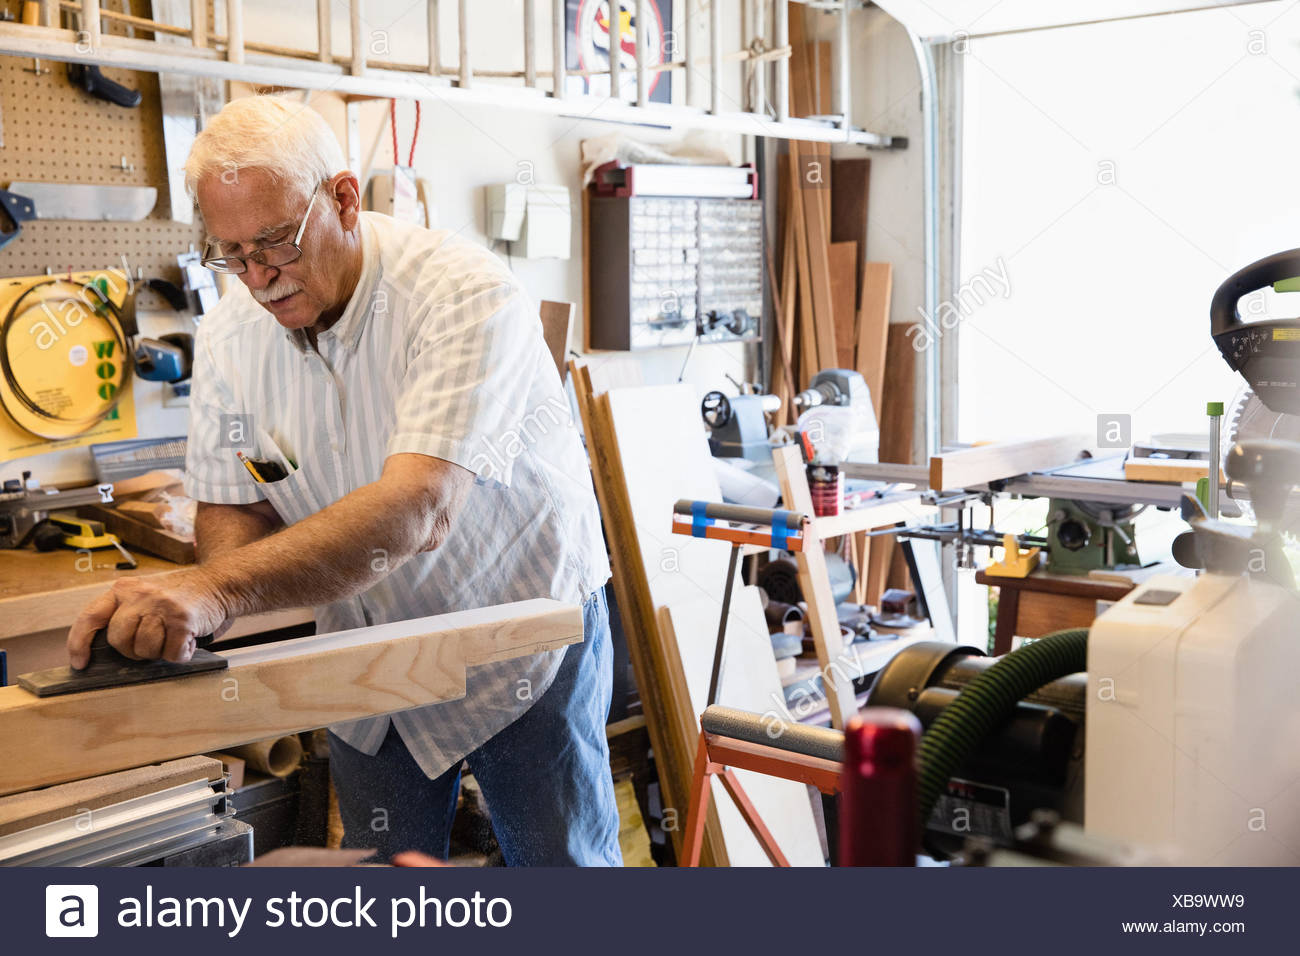 Senior man planing woodblock in carpentry workshop - Stock Image